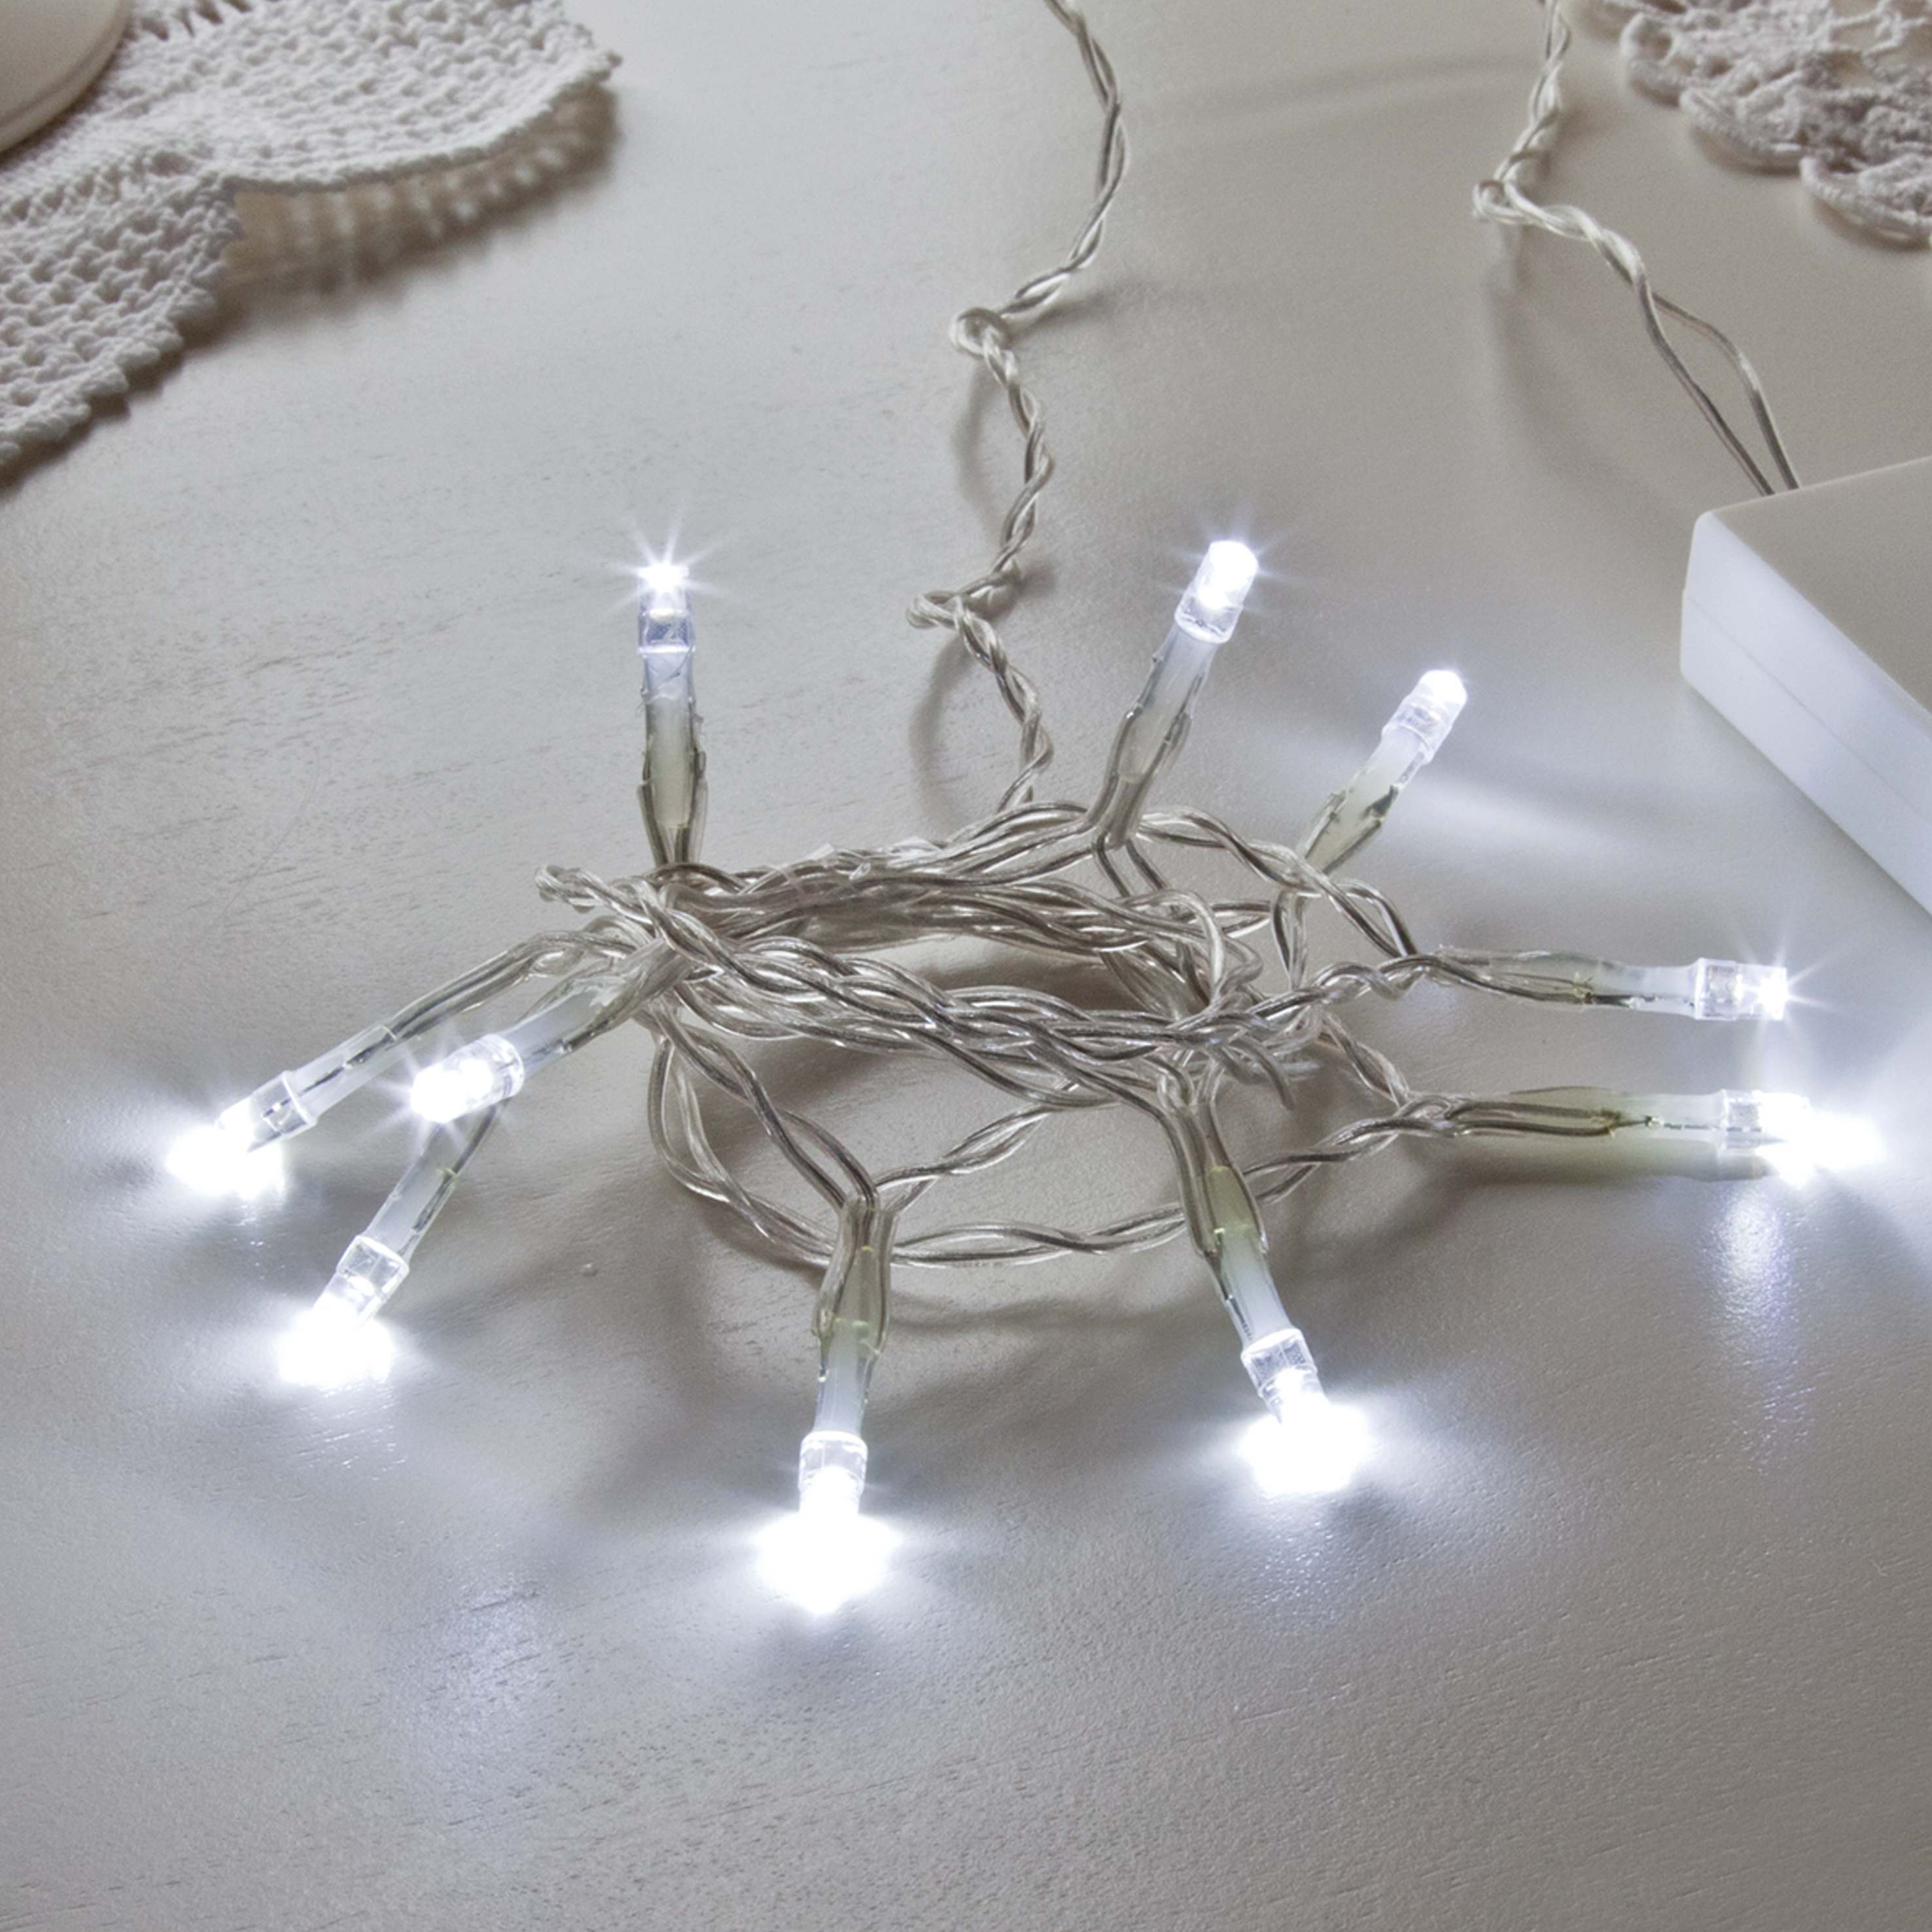 Battery Fairy Lights, 10 LEDs, Clear Cable